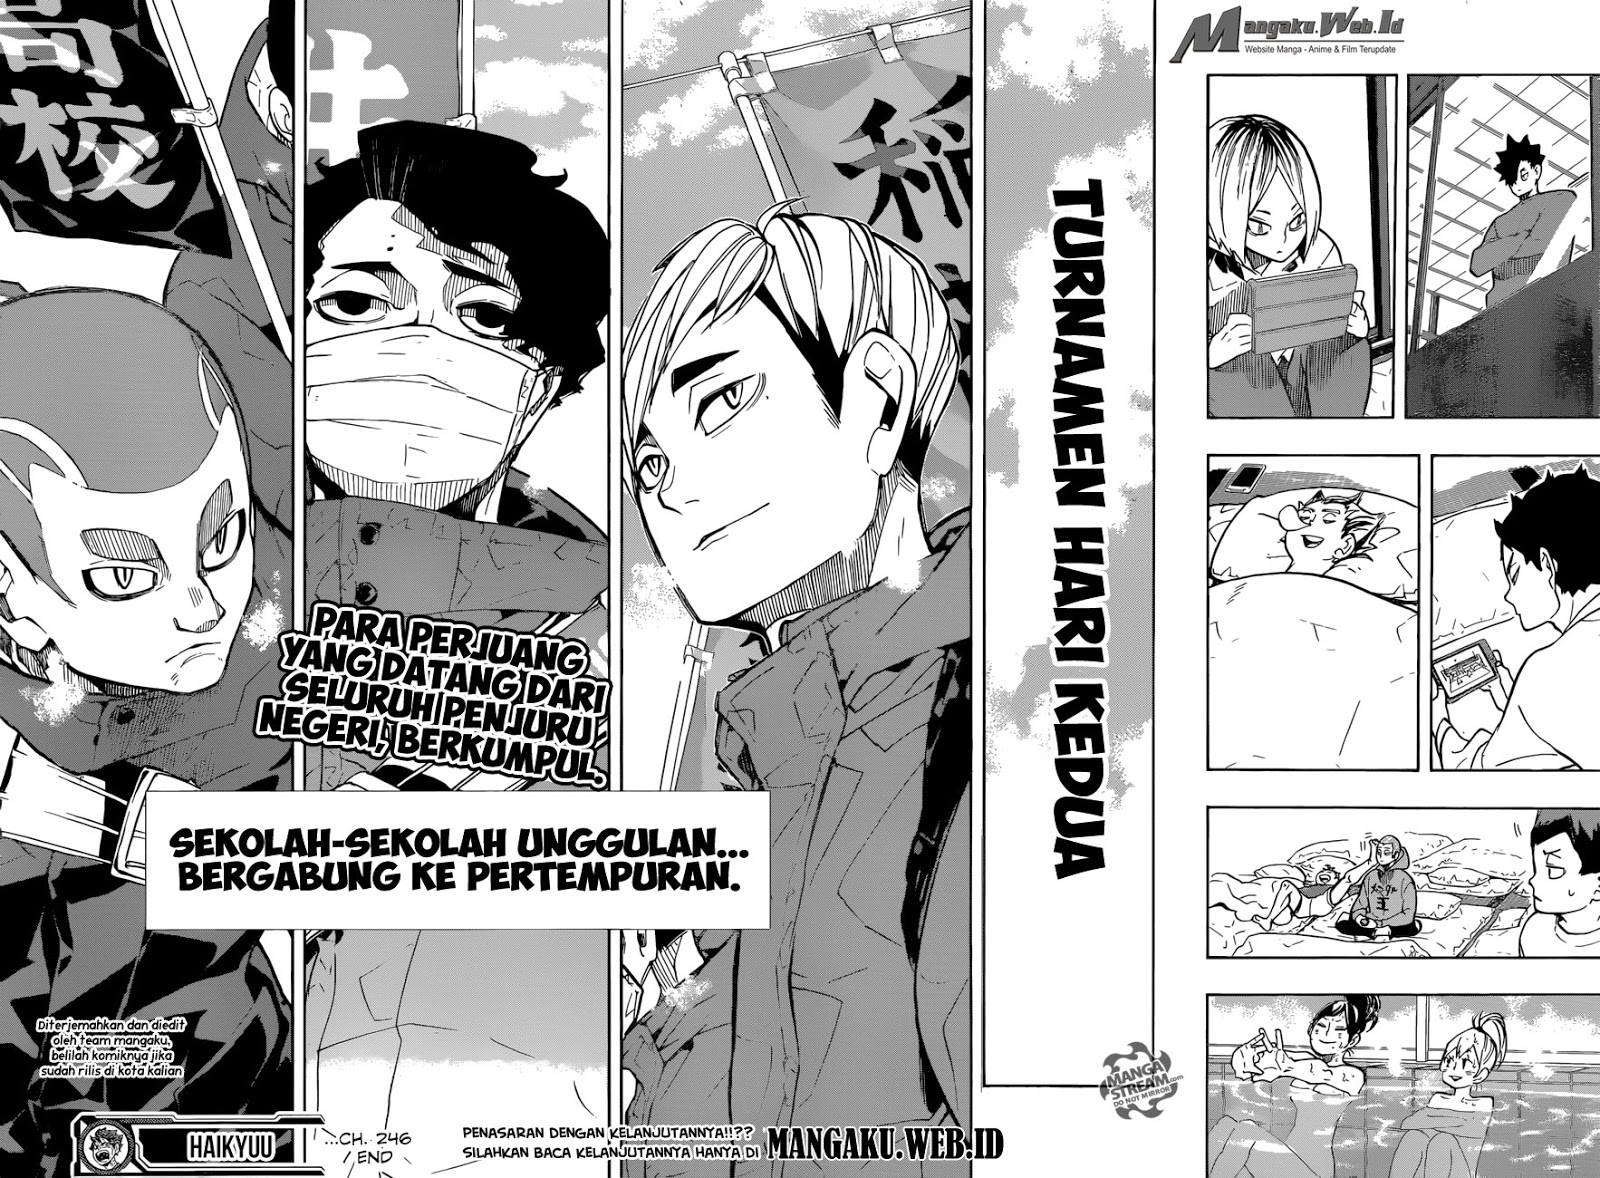 Haikyuu!! Chapter 246-17